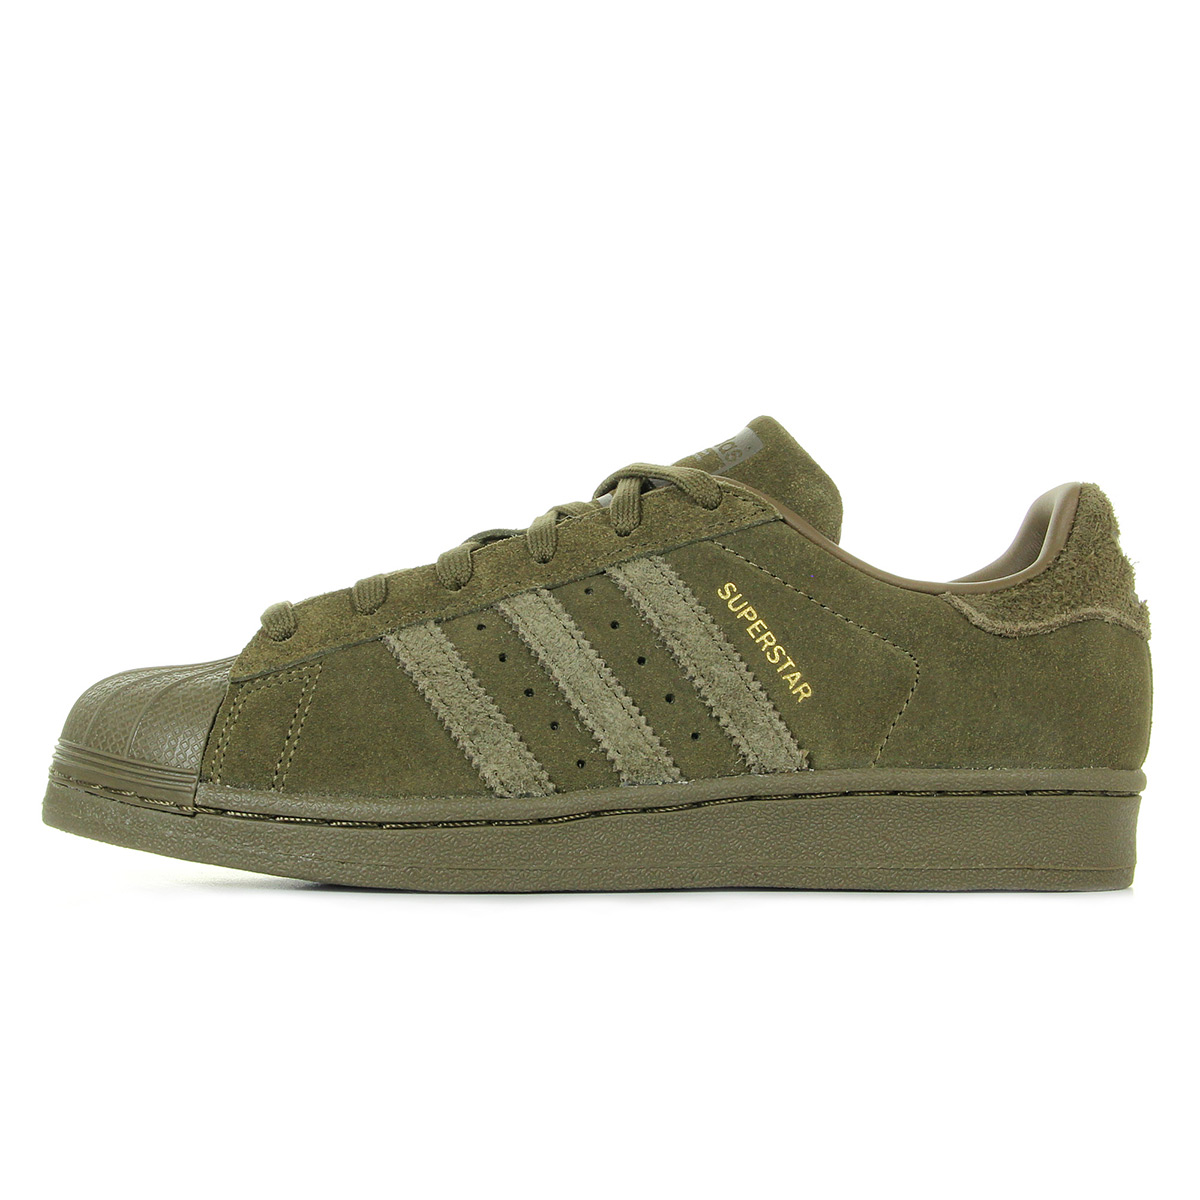 adidas Superstar Trace Olive CG3739, Baskets mode homme